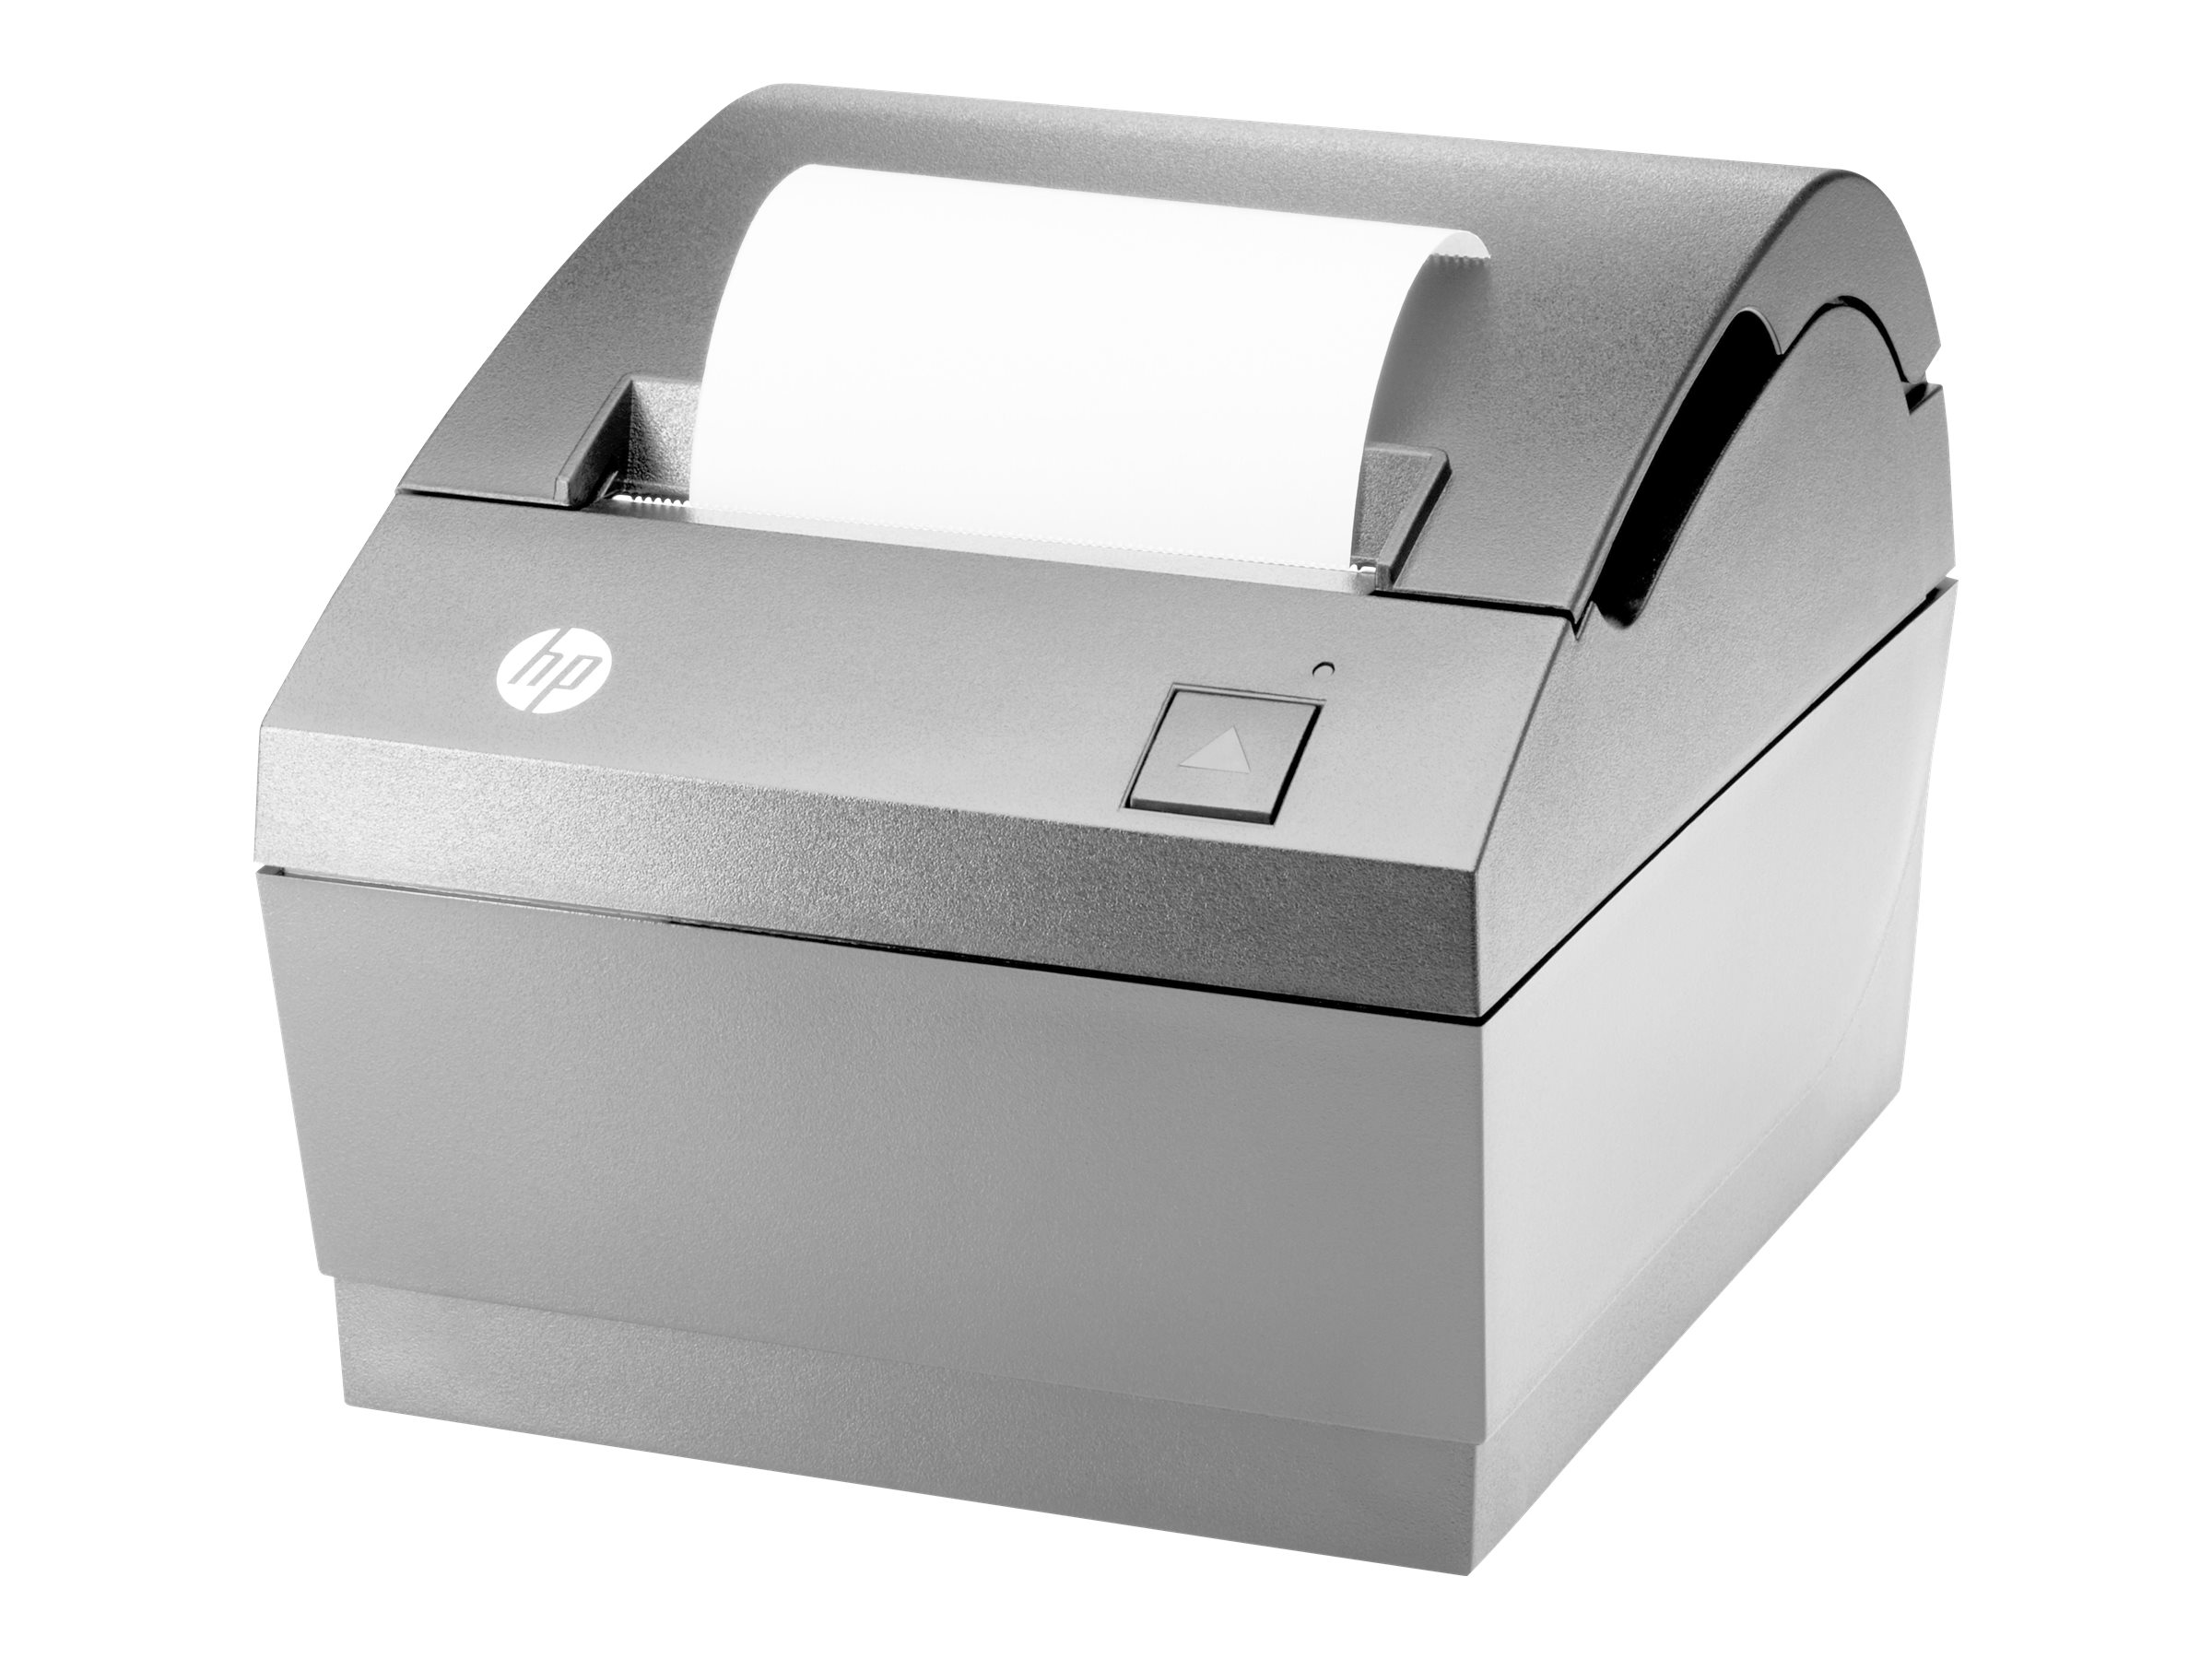 HP - receipt printer - two-color (monochrome) - direct thermal